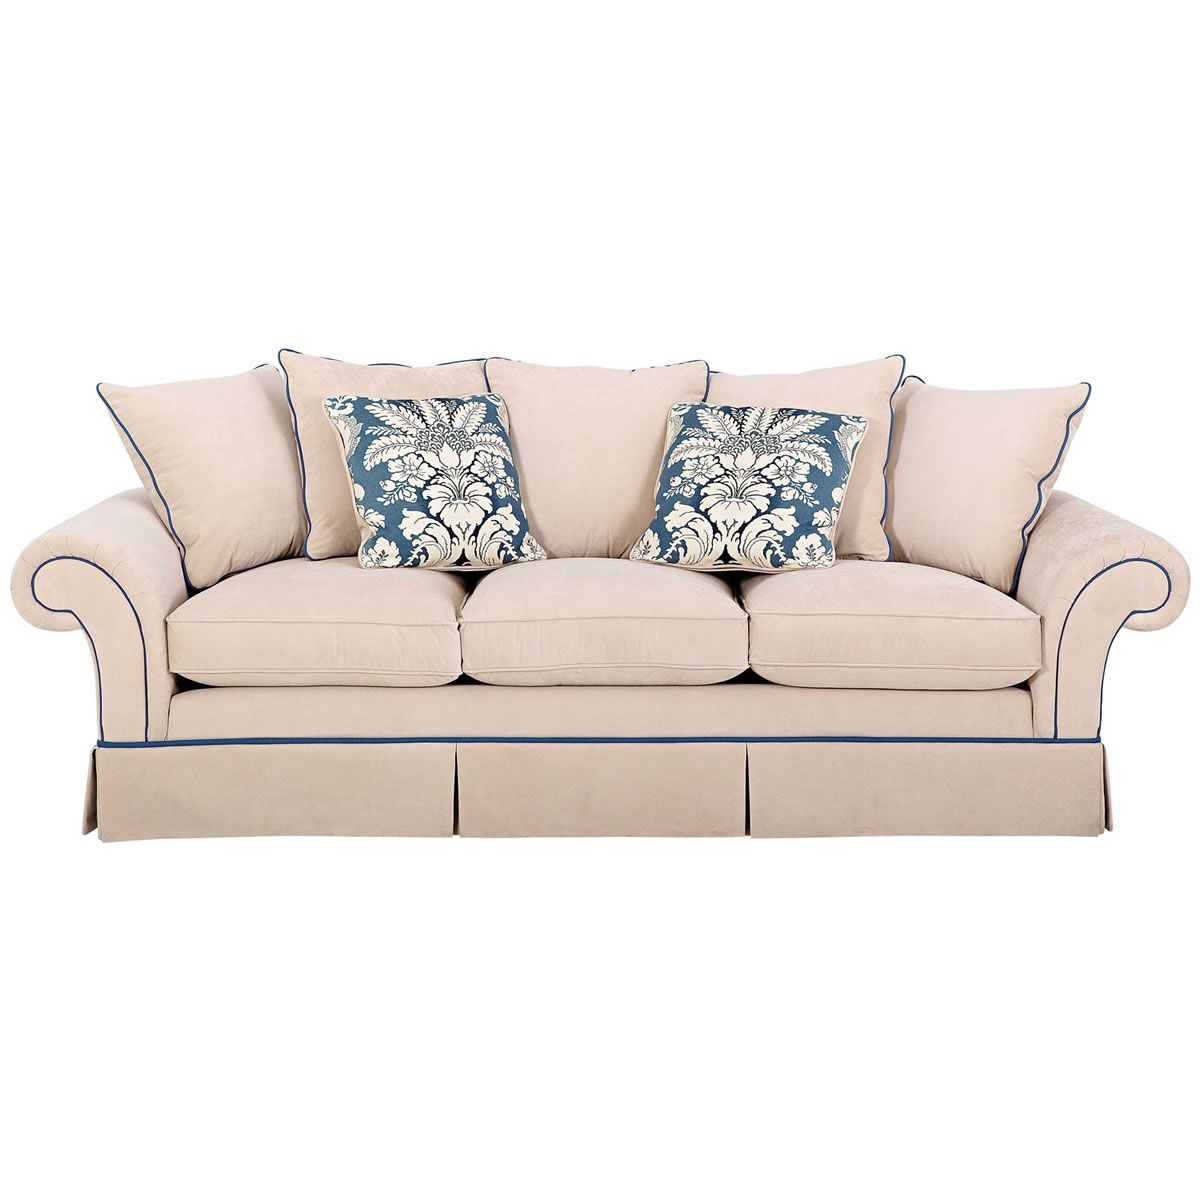 australian made sofa beds adelaide modern designs for drawing room 2017 denver 3 seater fabric from domayne